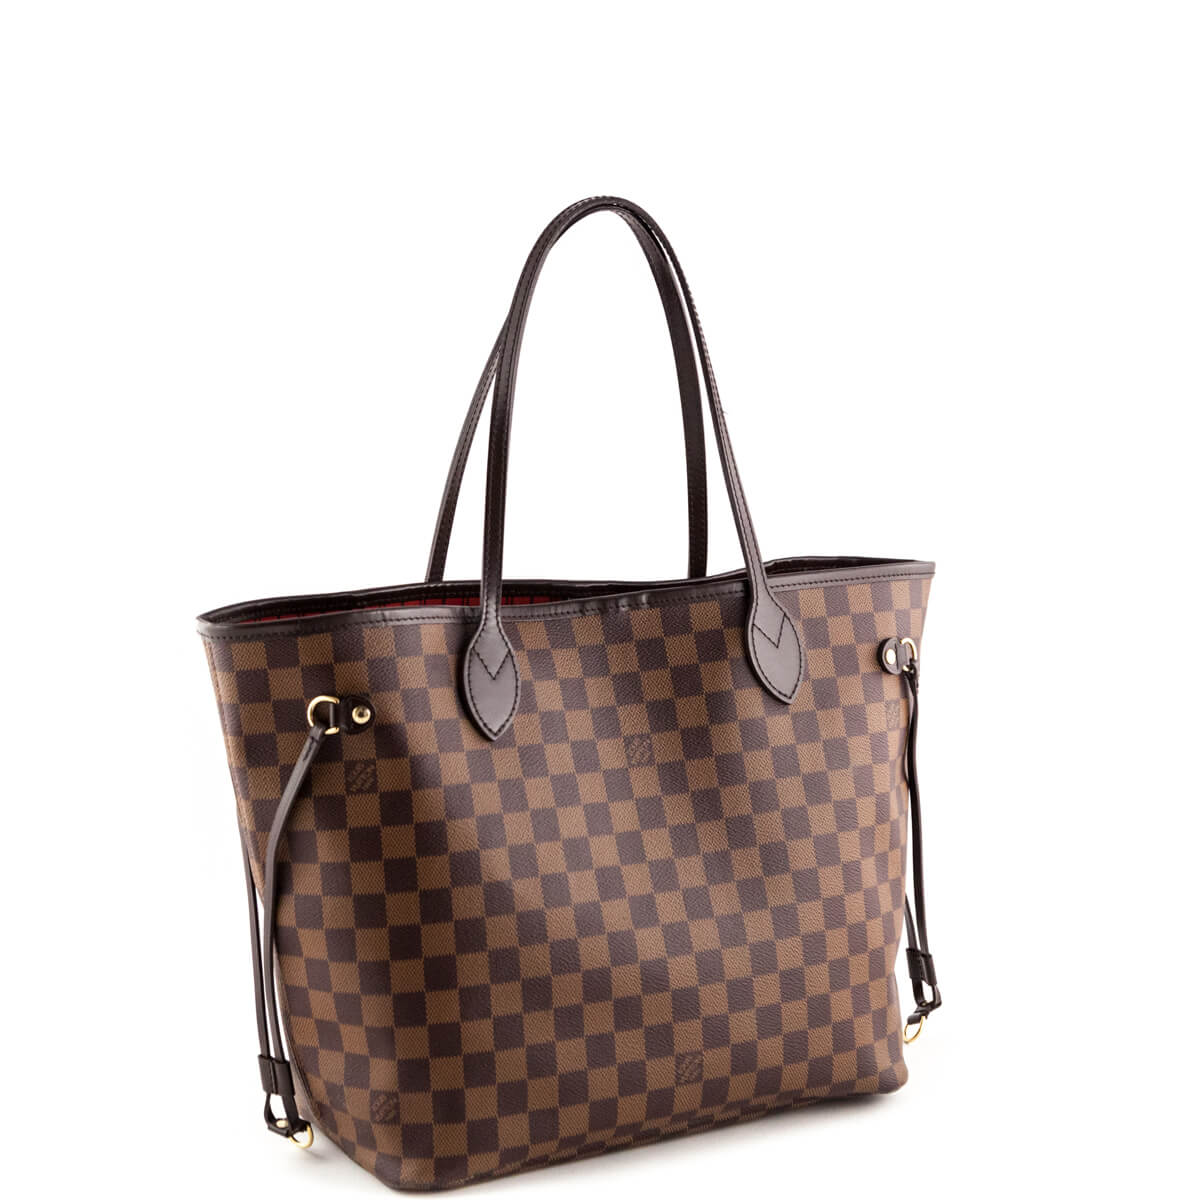 Sac Louis Vuitton Neverfull Mm : Louis vuitton damier ebene neverfull mm secondhand bags